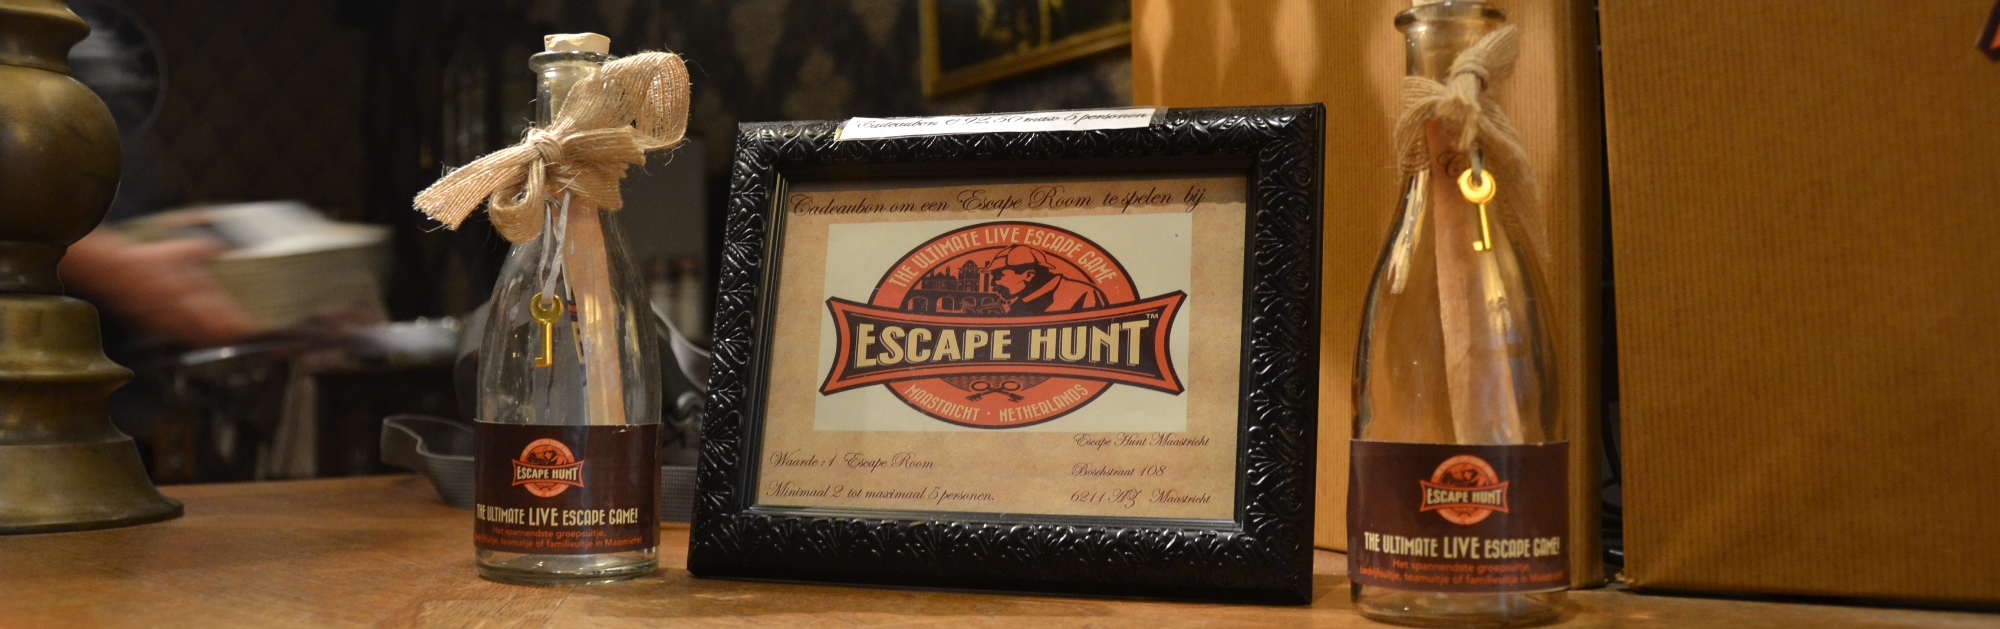 Escape-Room-Maastricht-The-Escape-Hunt-Experience-22